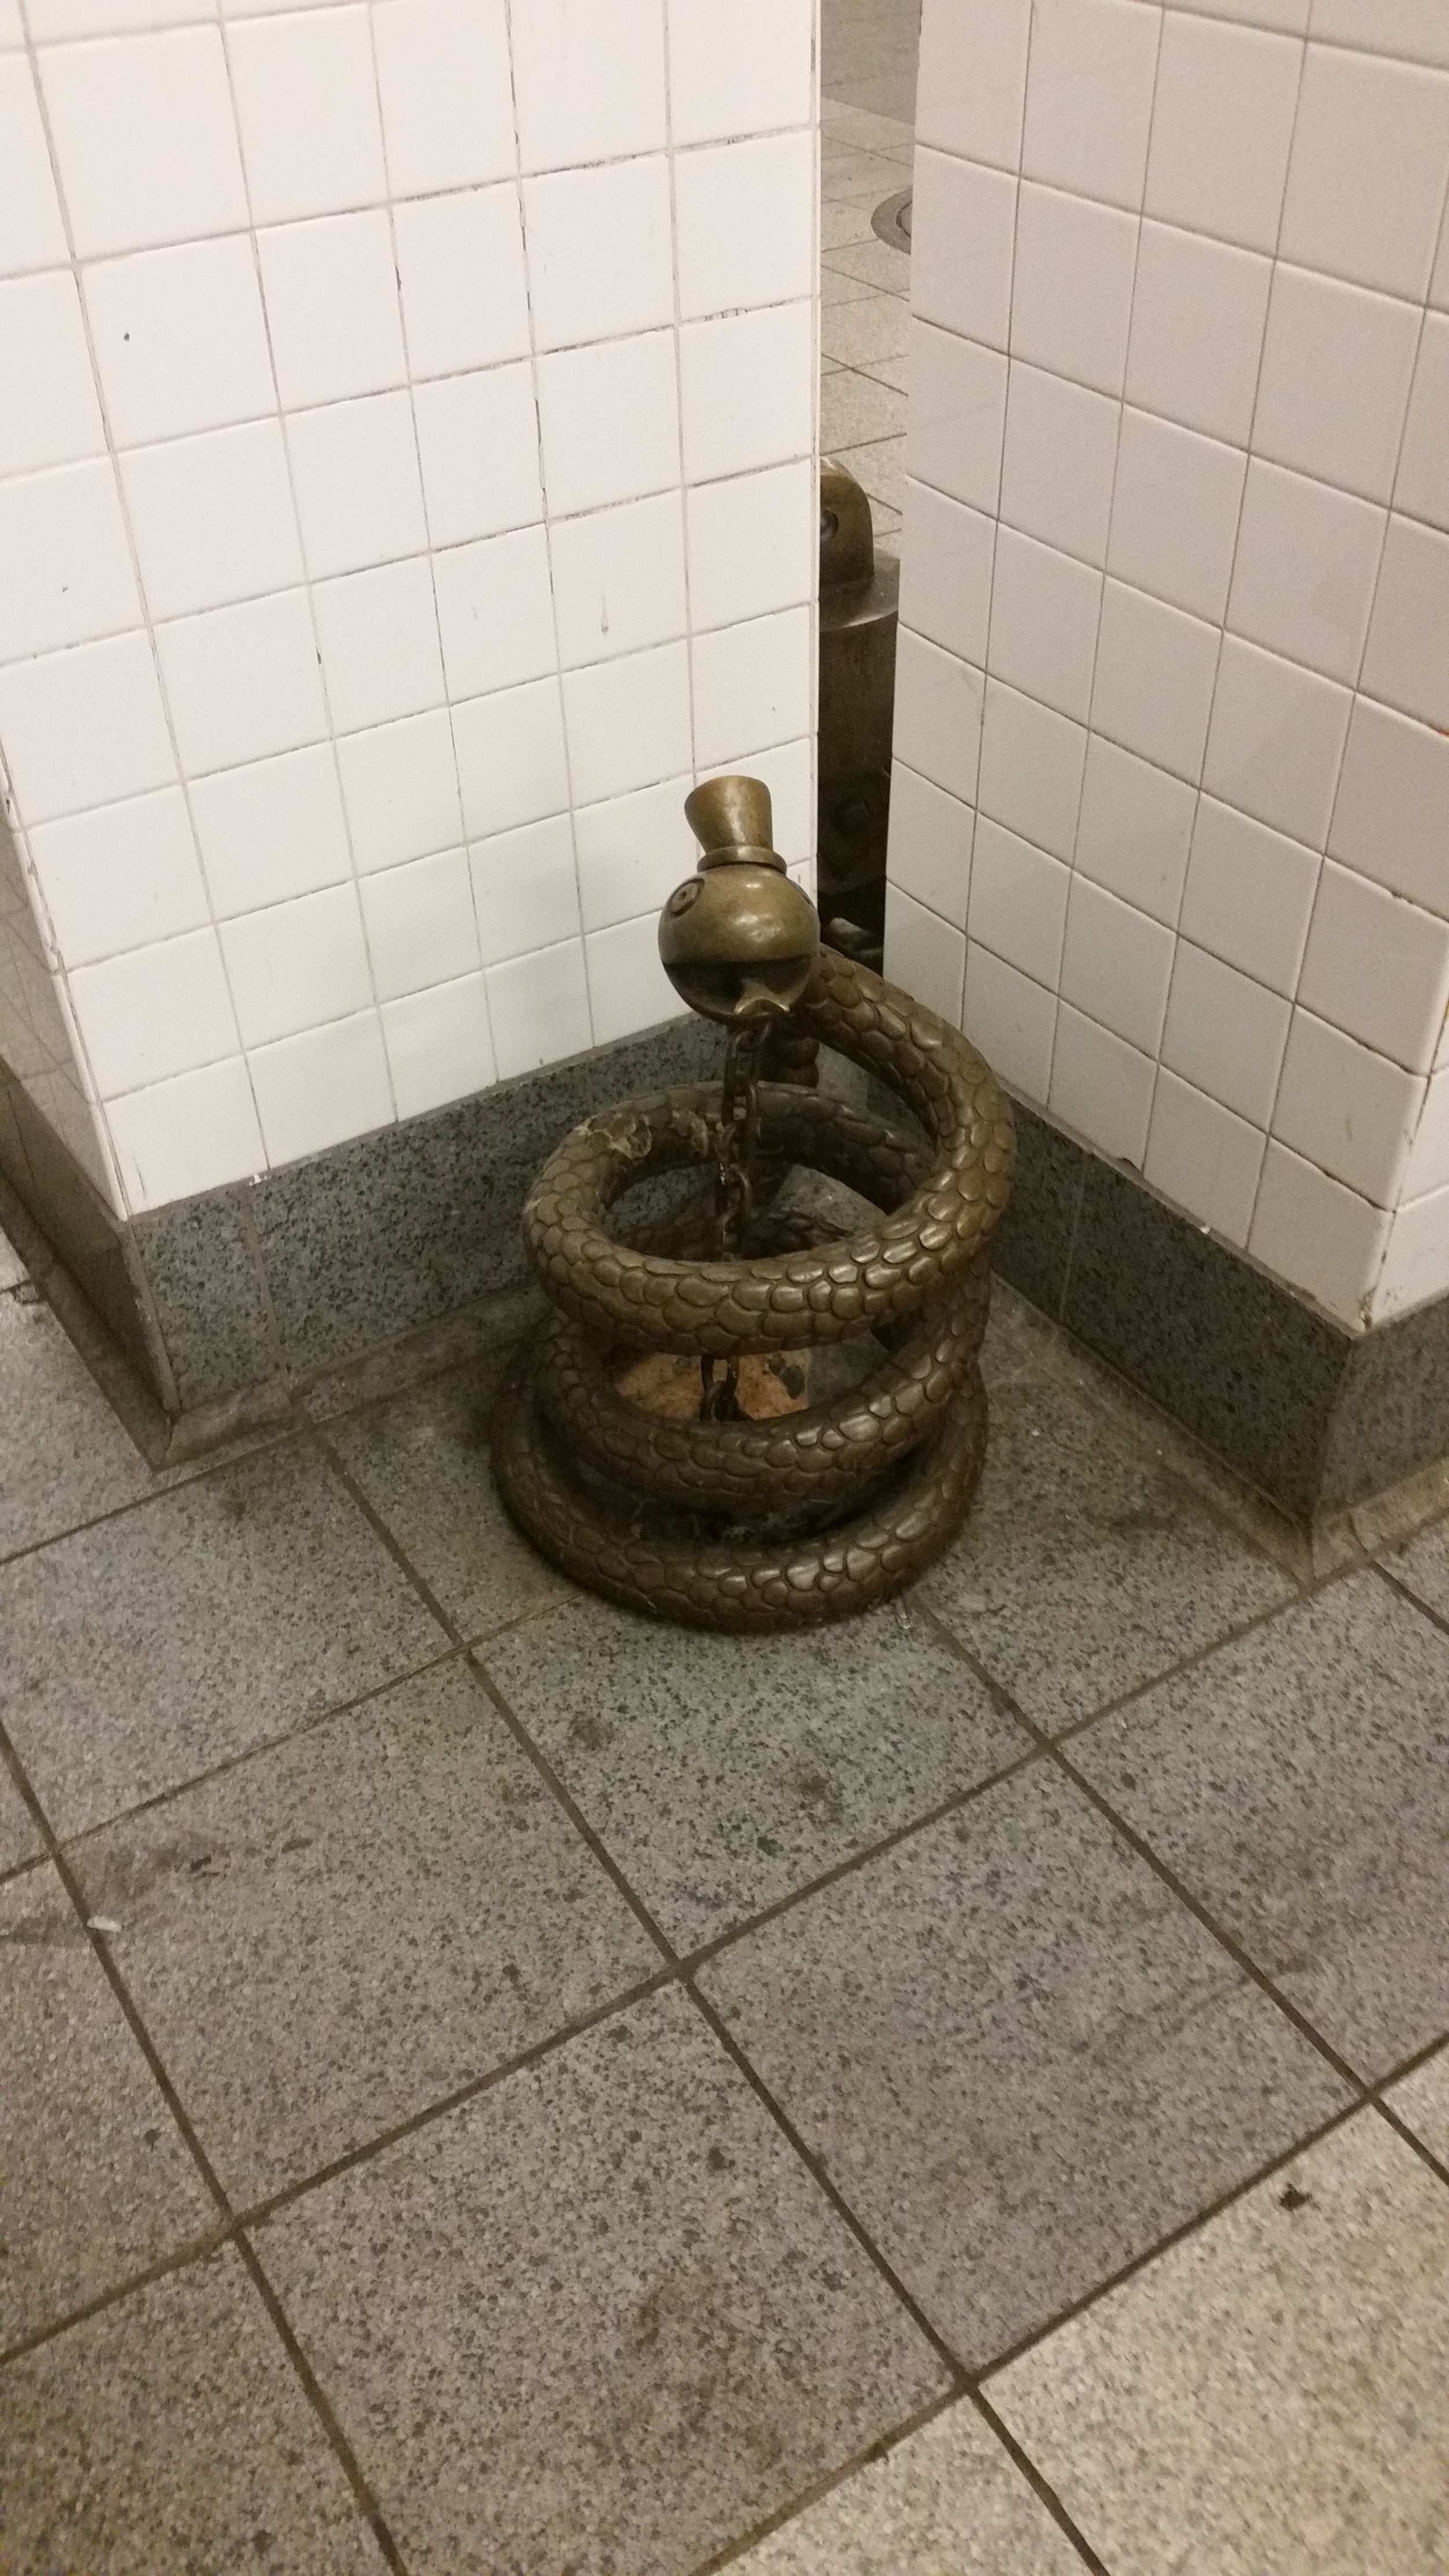 coiled snake statue in subway.jpg